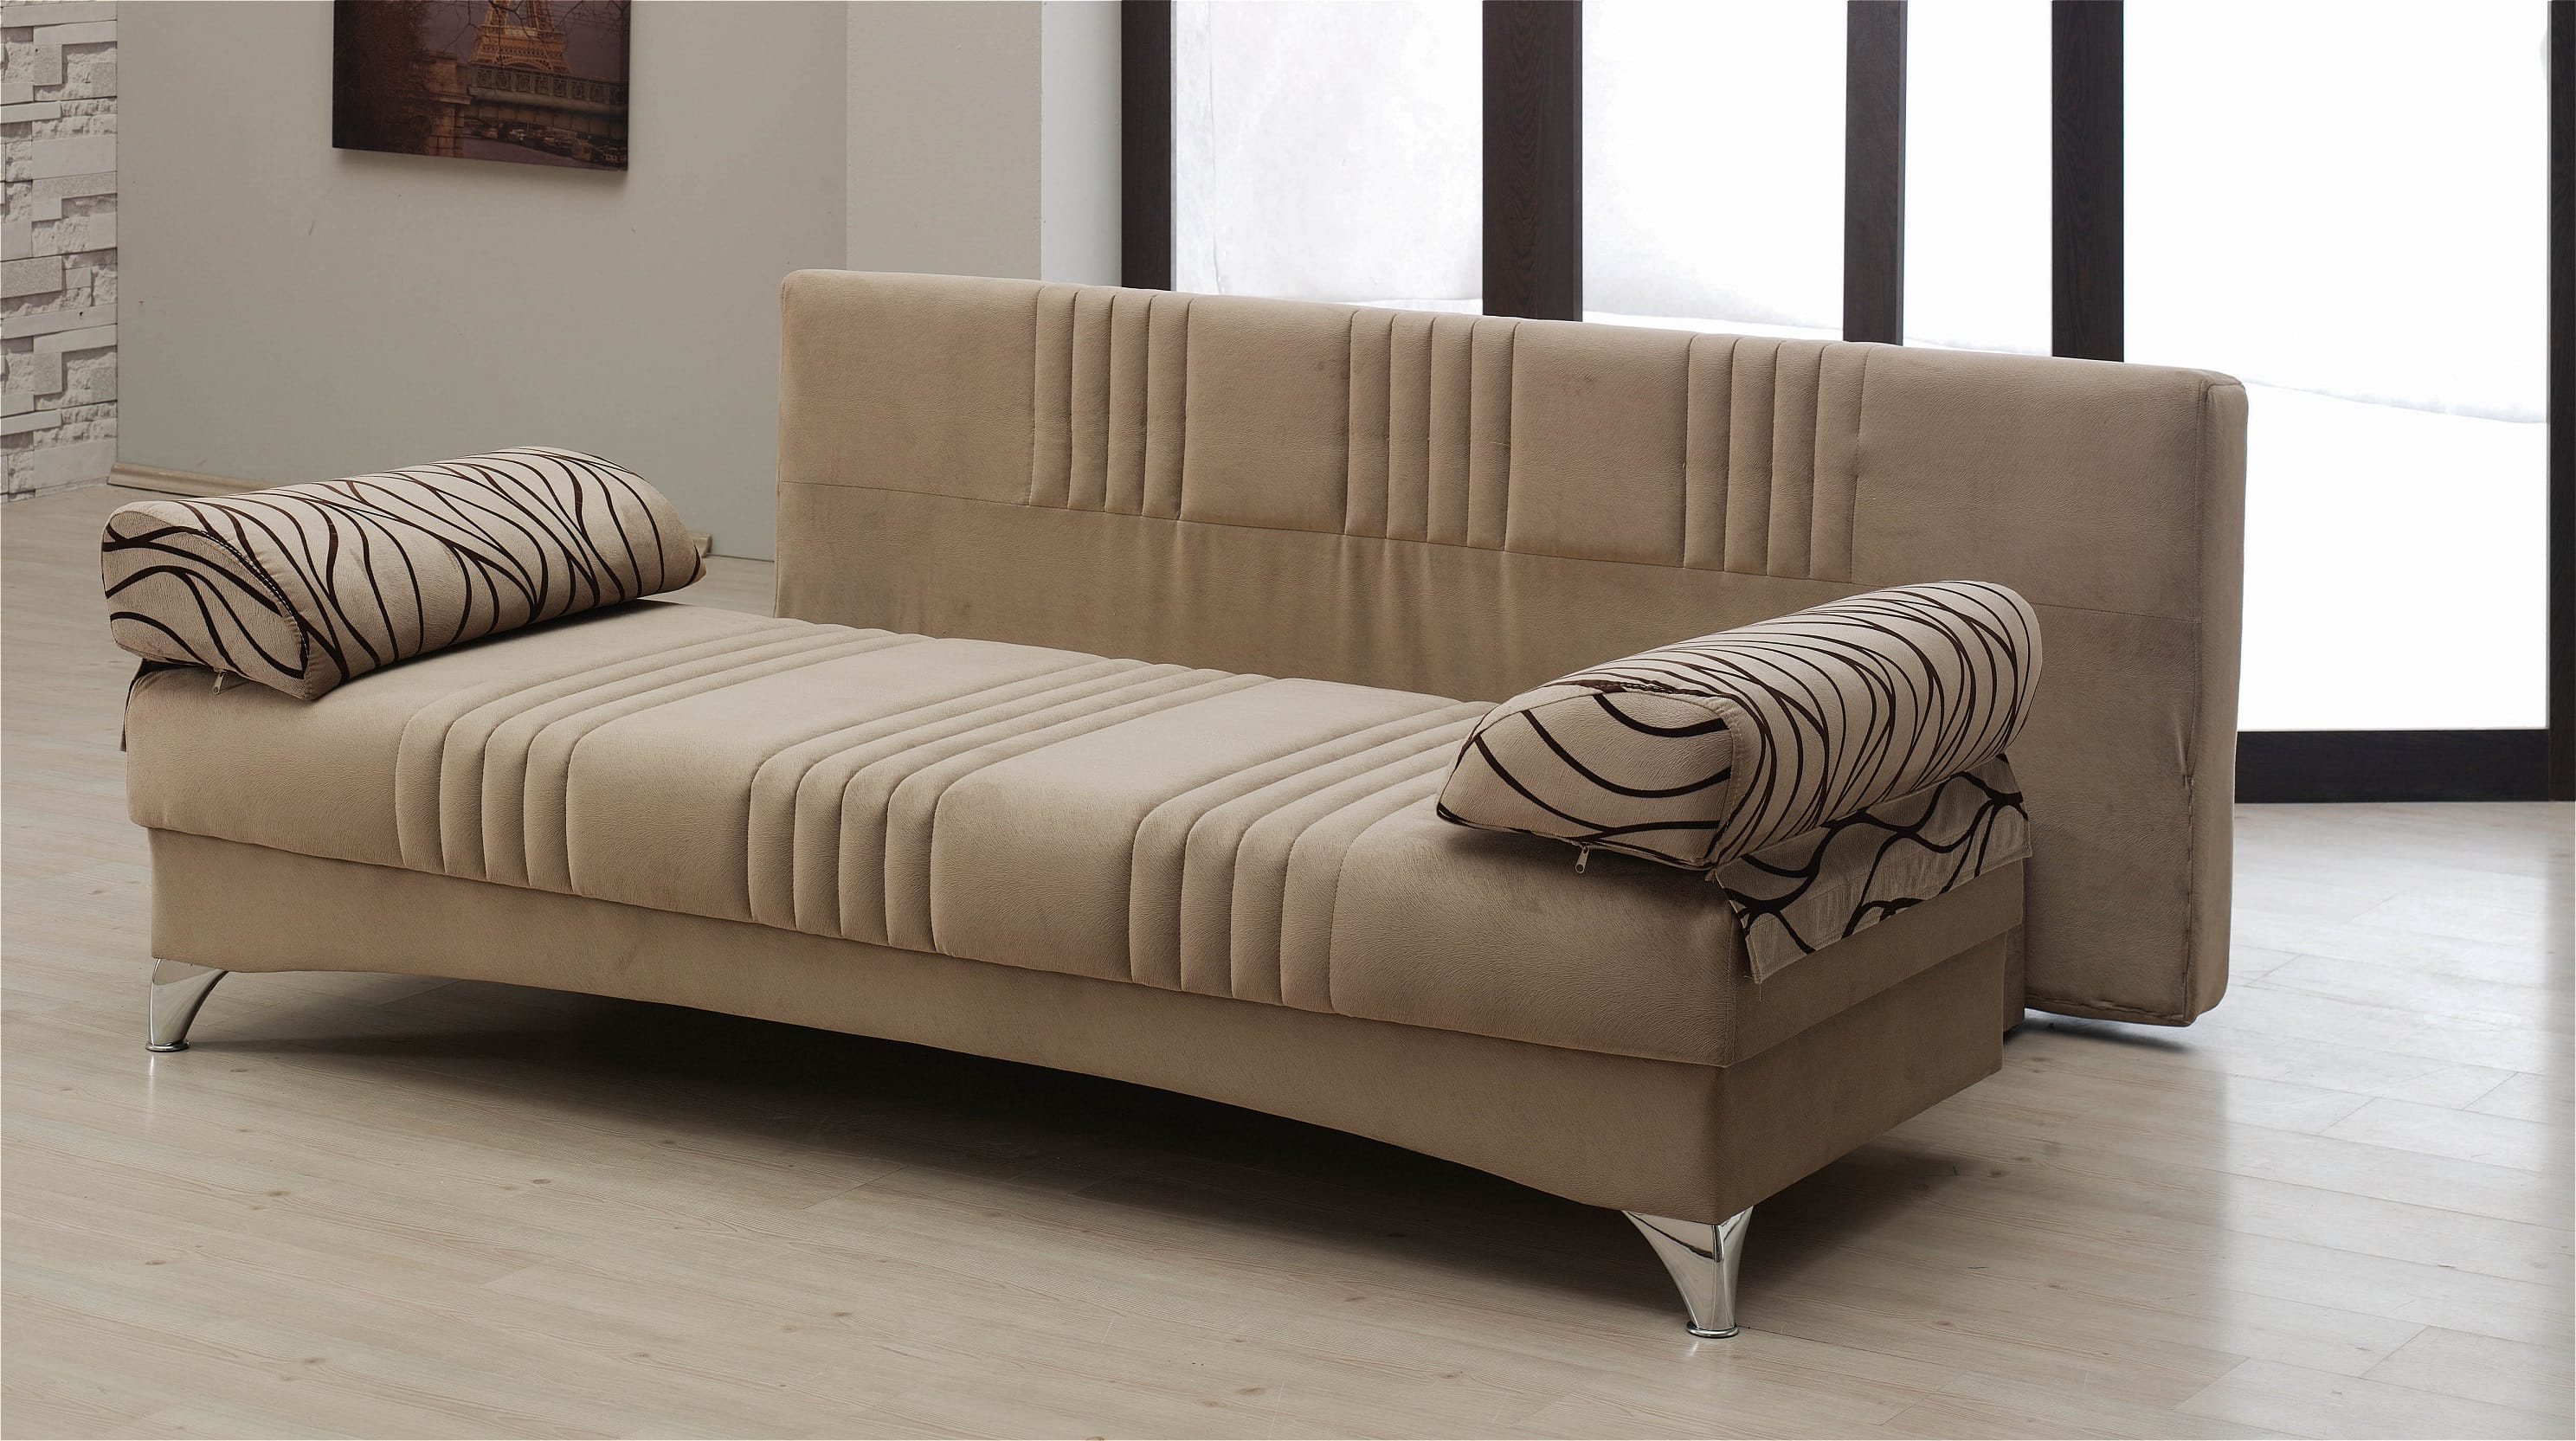 Daisy Light Brown Sofa Bed by Empire Furniture USA